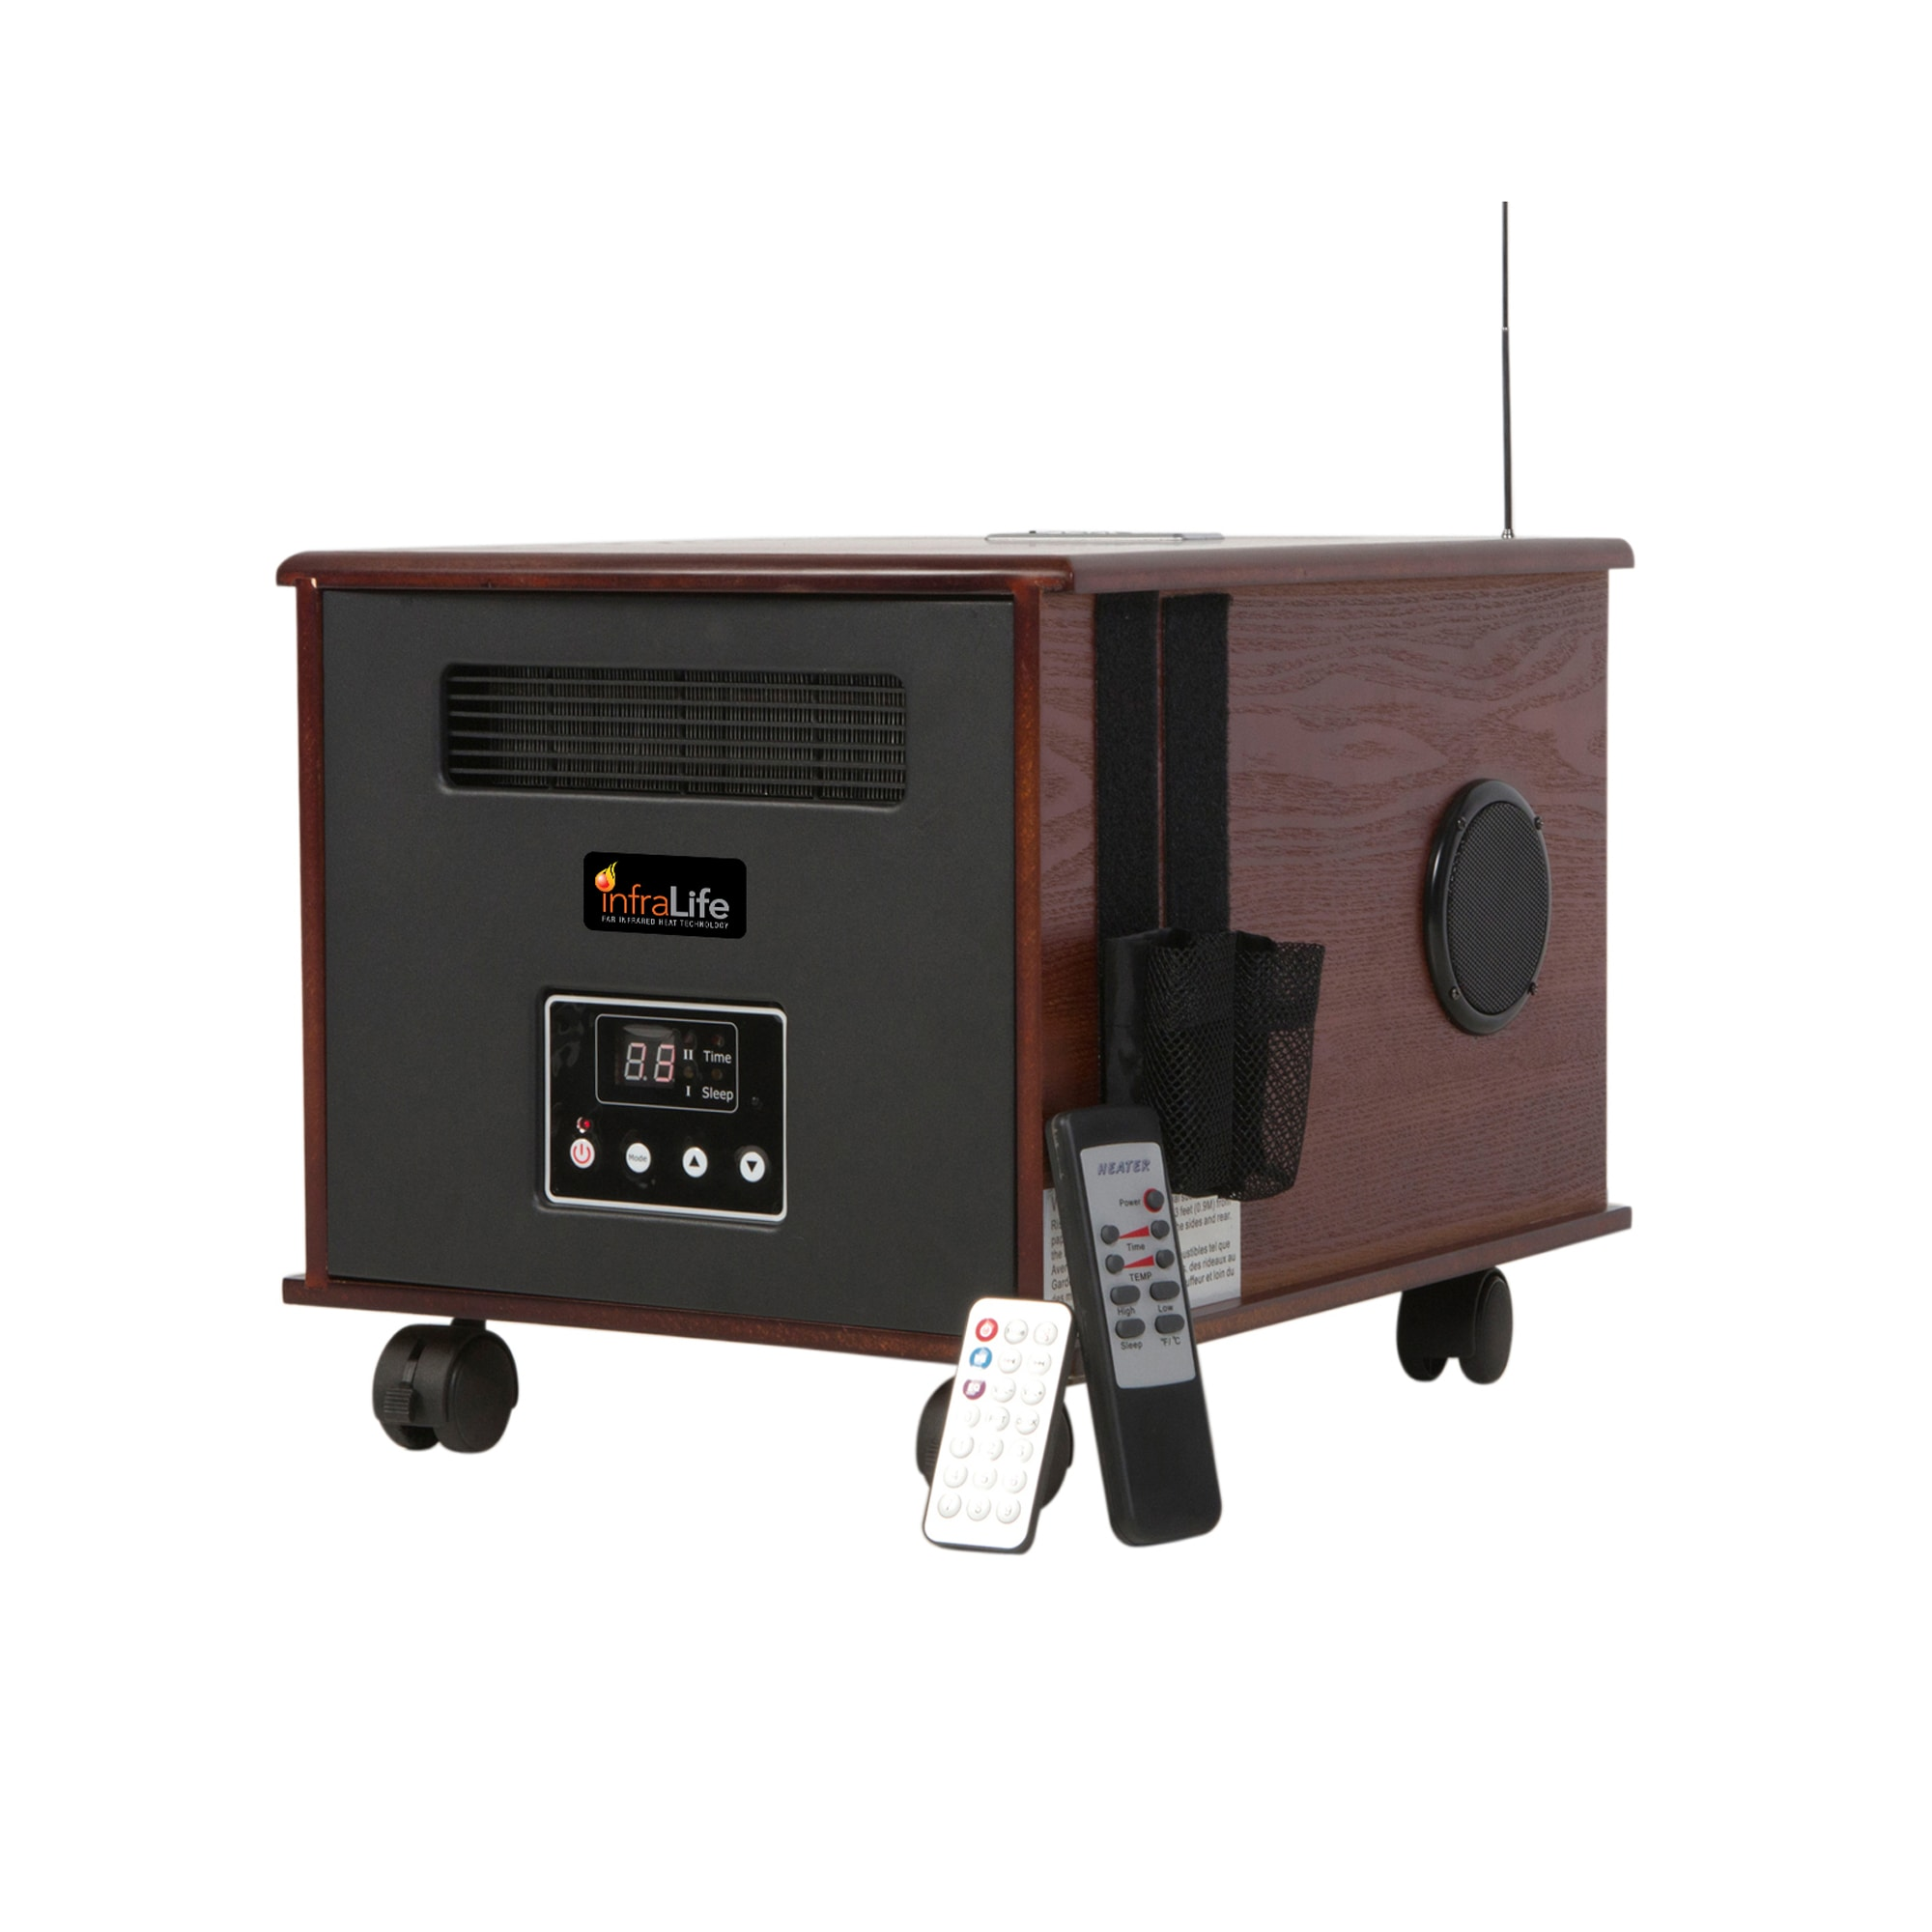 Overstock.com Infralife 300PTC Digital Infrared Space Heater with Music at Sears.com